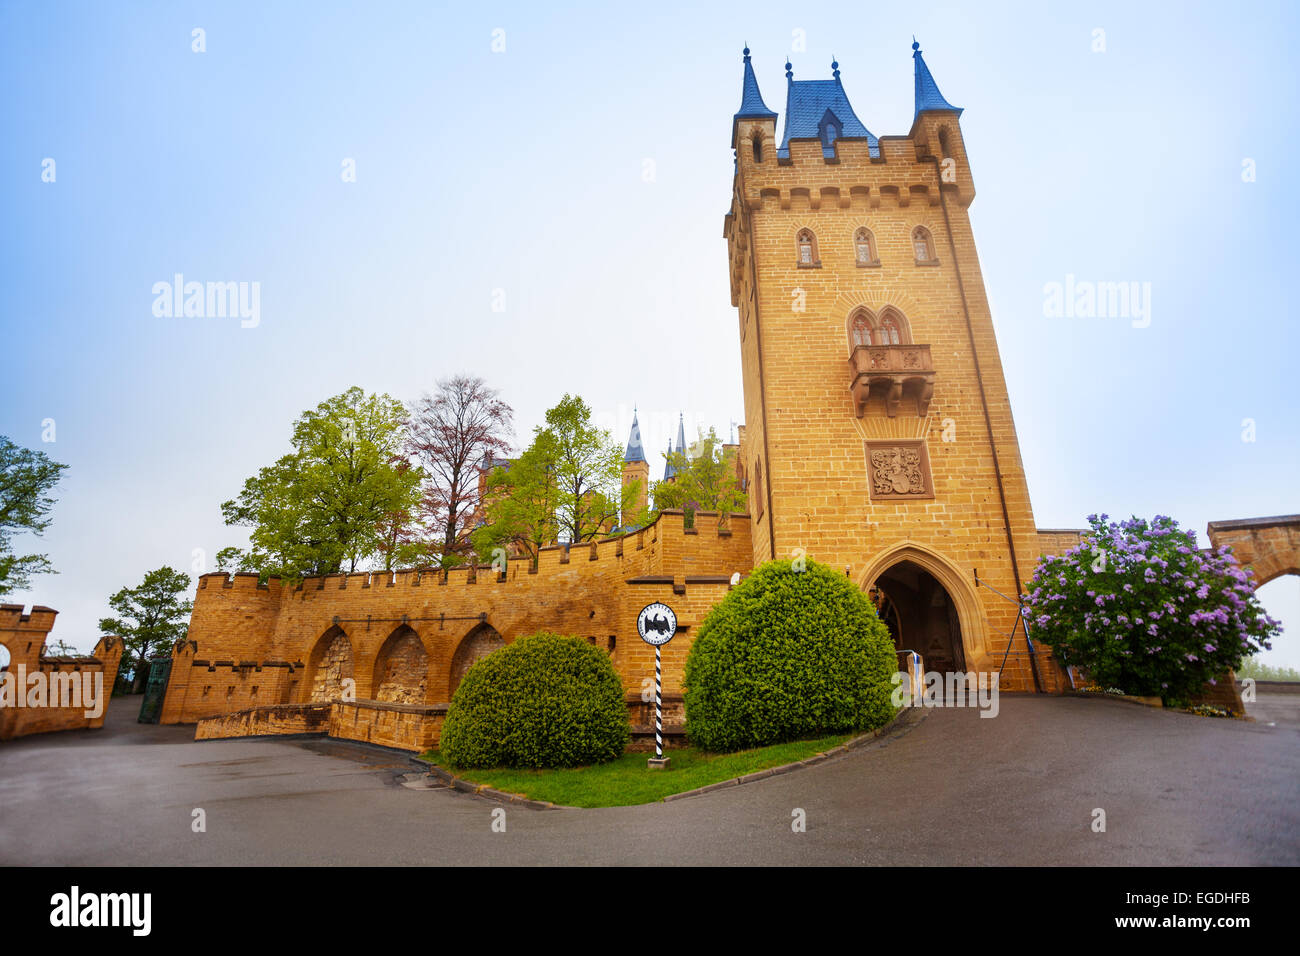 Tower and walls in inner yard of Hohenzollern - Stock Image